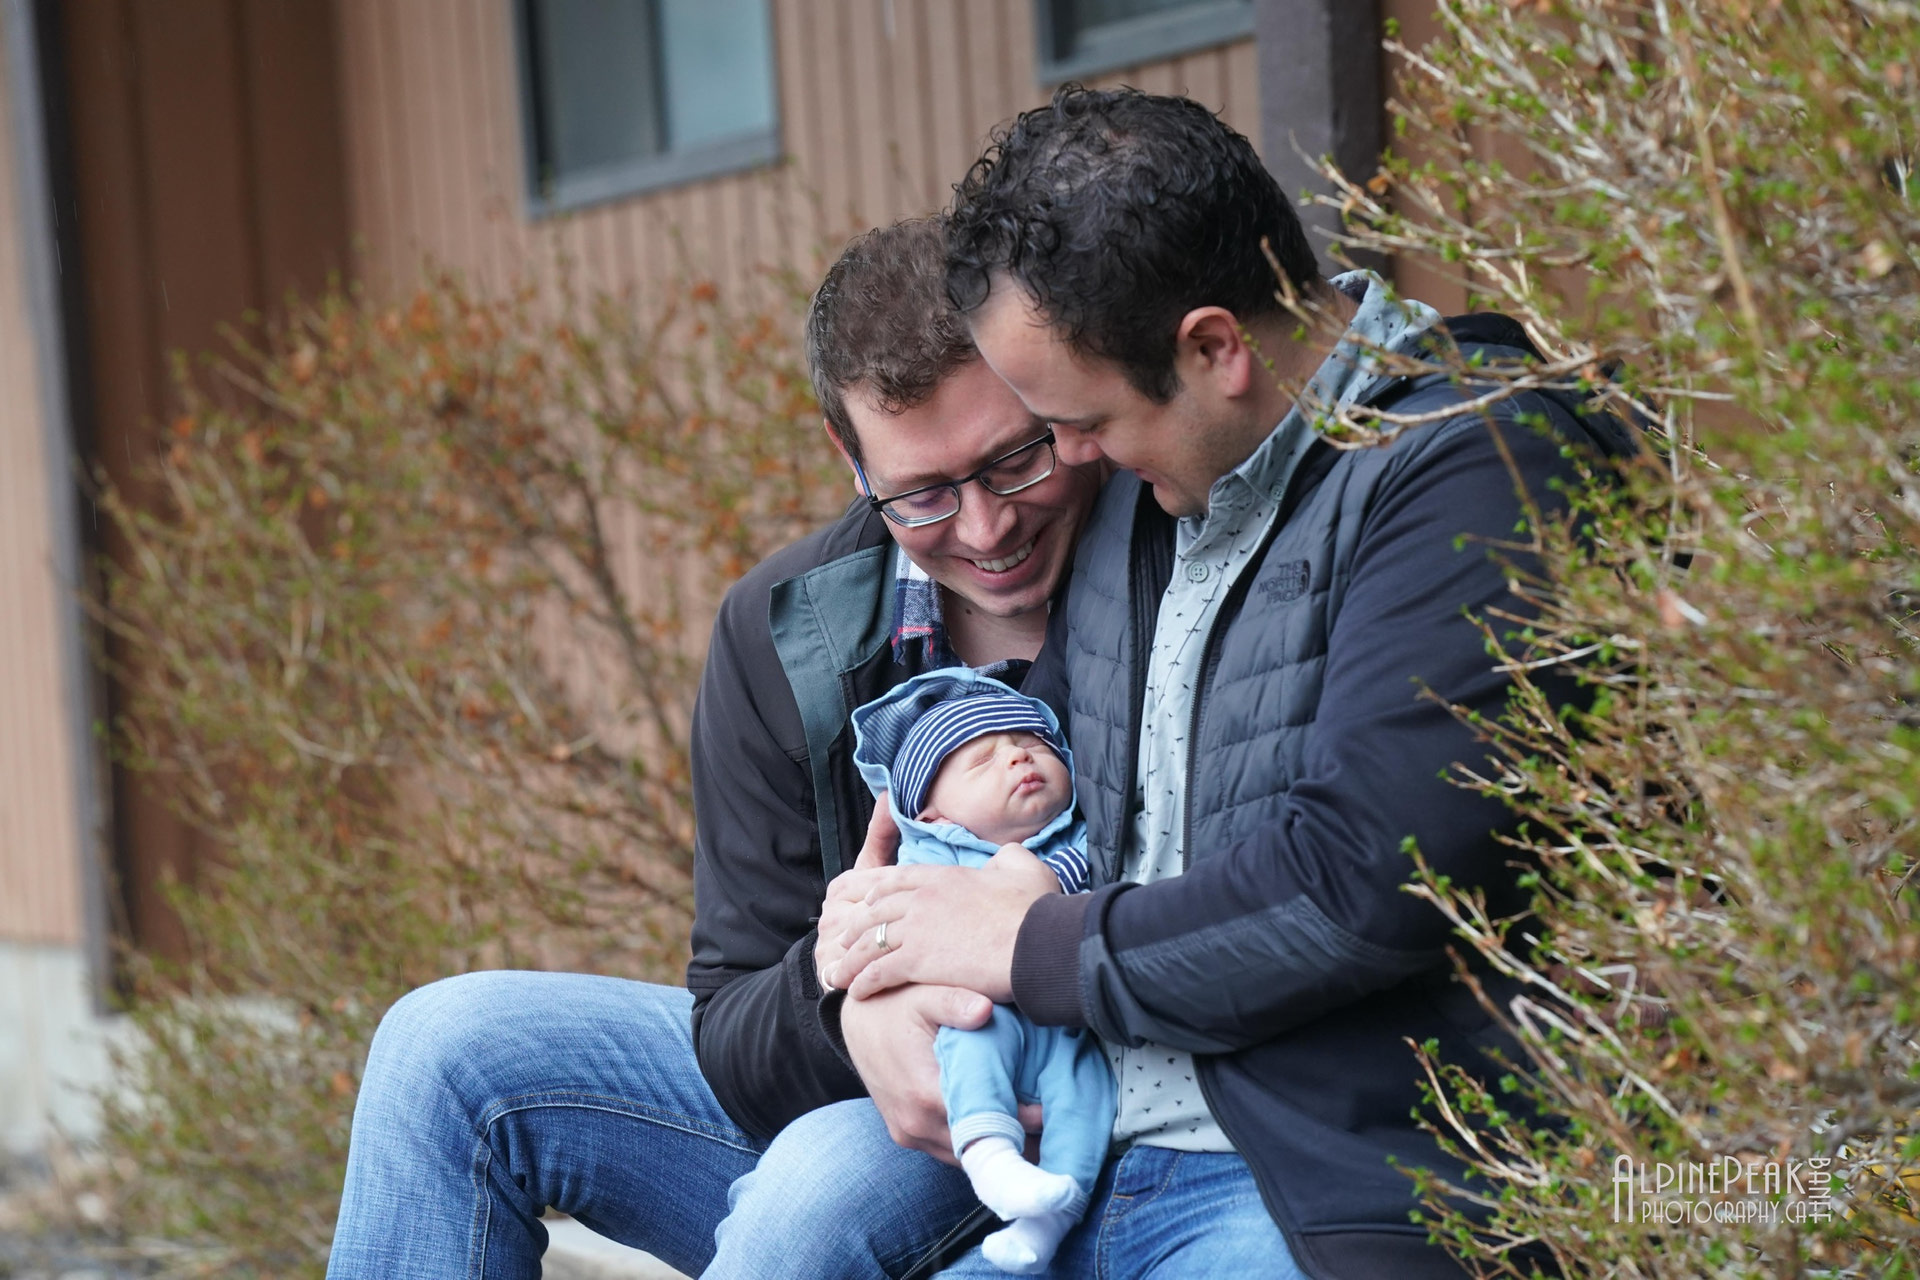 Coming together while staying apart – Banff families support hospital with photo project